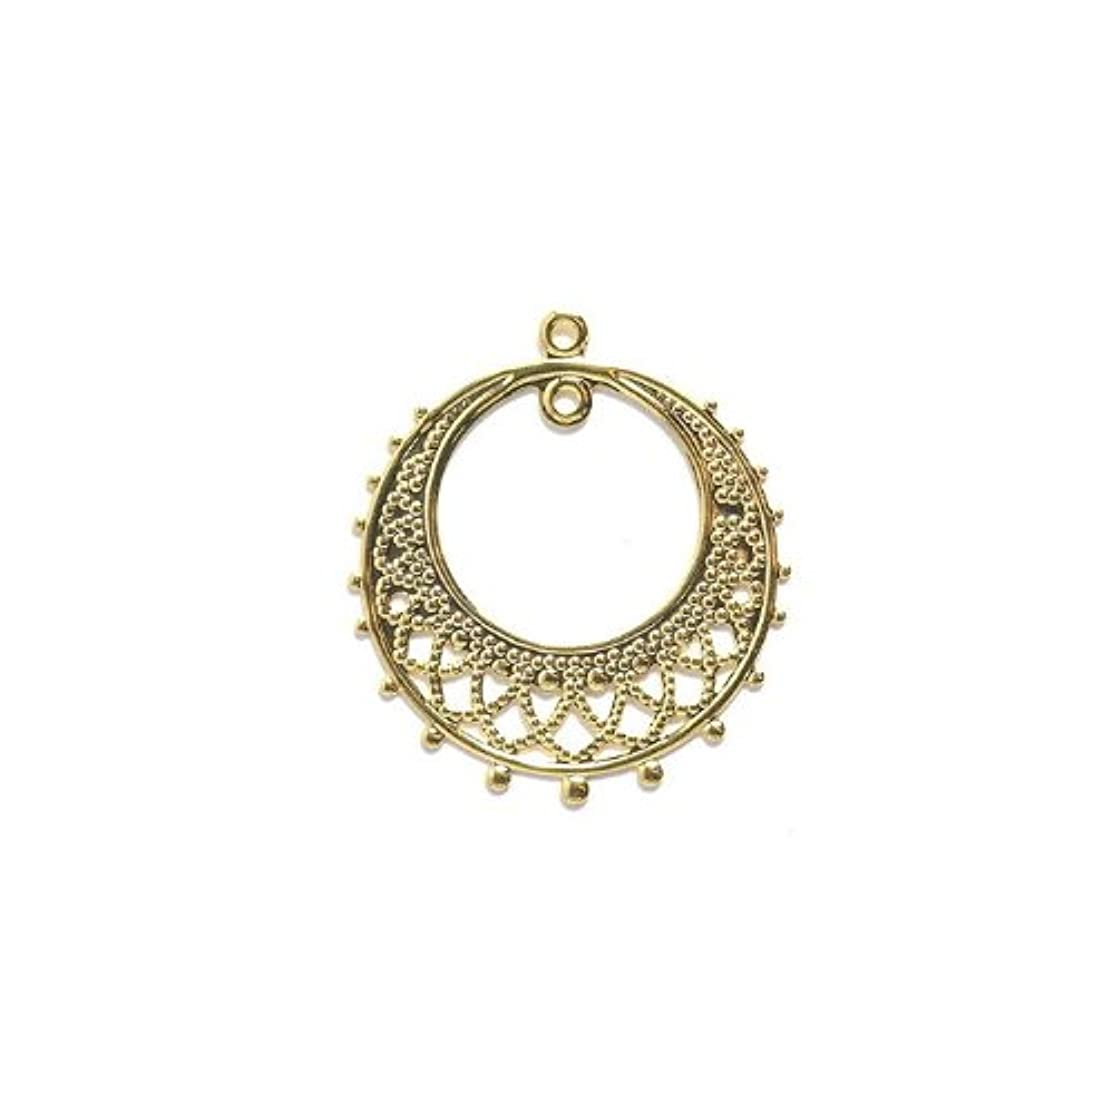 Shipwreck Beads Electroplated Brass Earring Round Drop 1-Loop, 25 by 28mm, Metallic, Gold, 4-Pairs